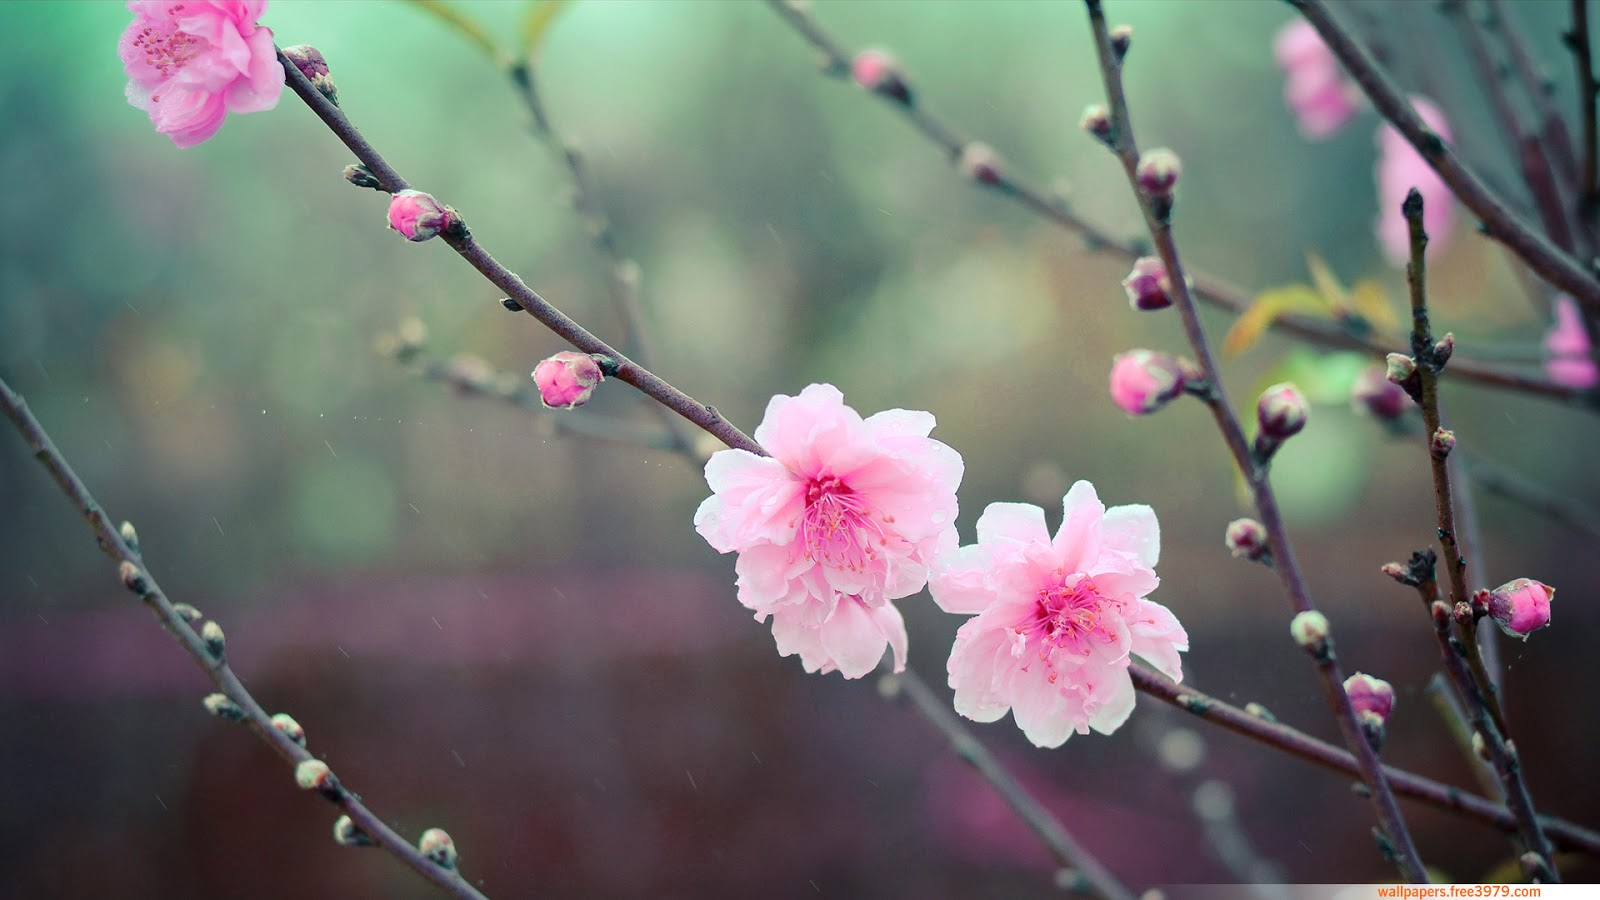 20 Asian Cherry Blossom Flower Wallpapers Wallpaper